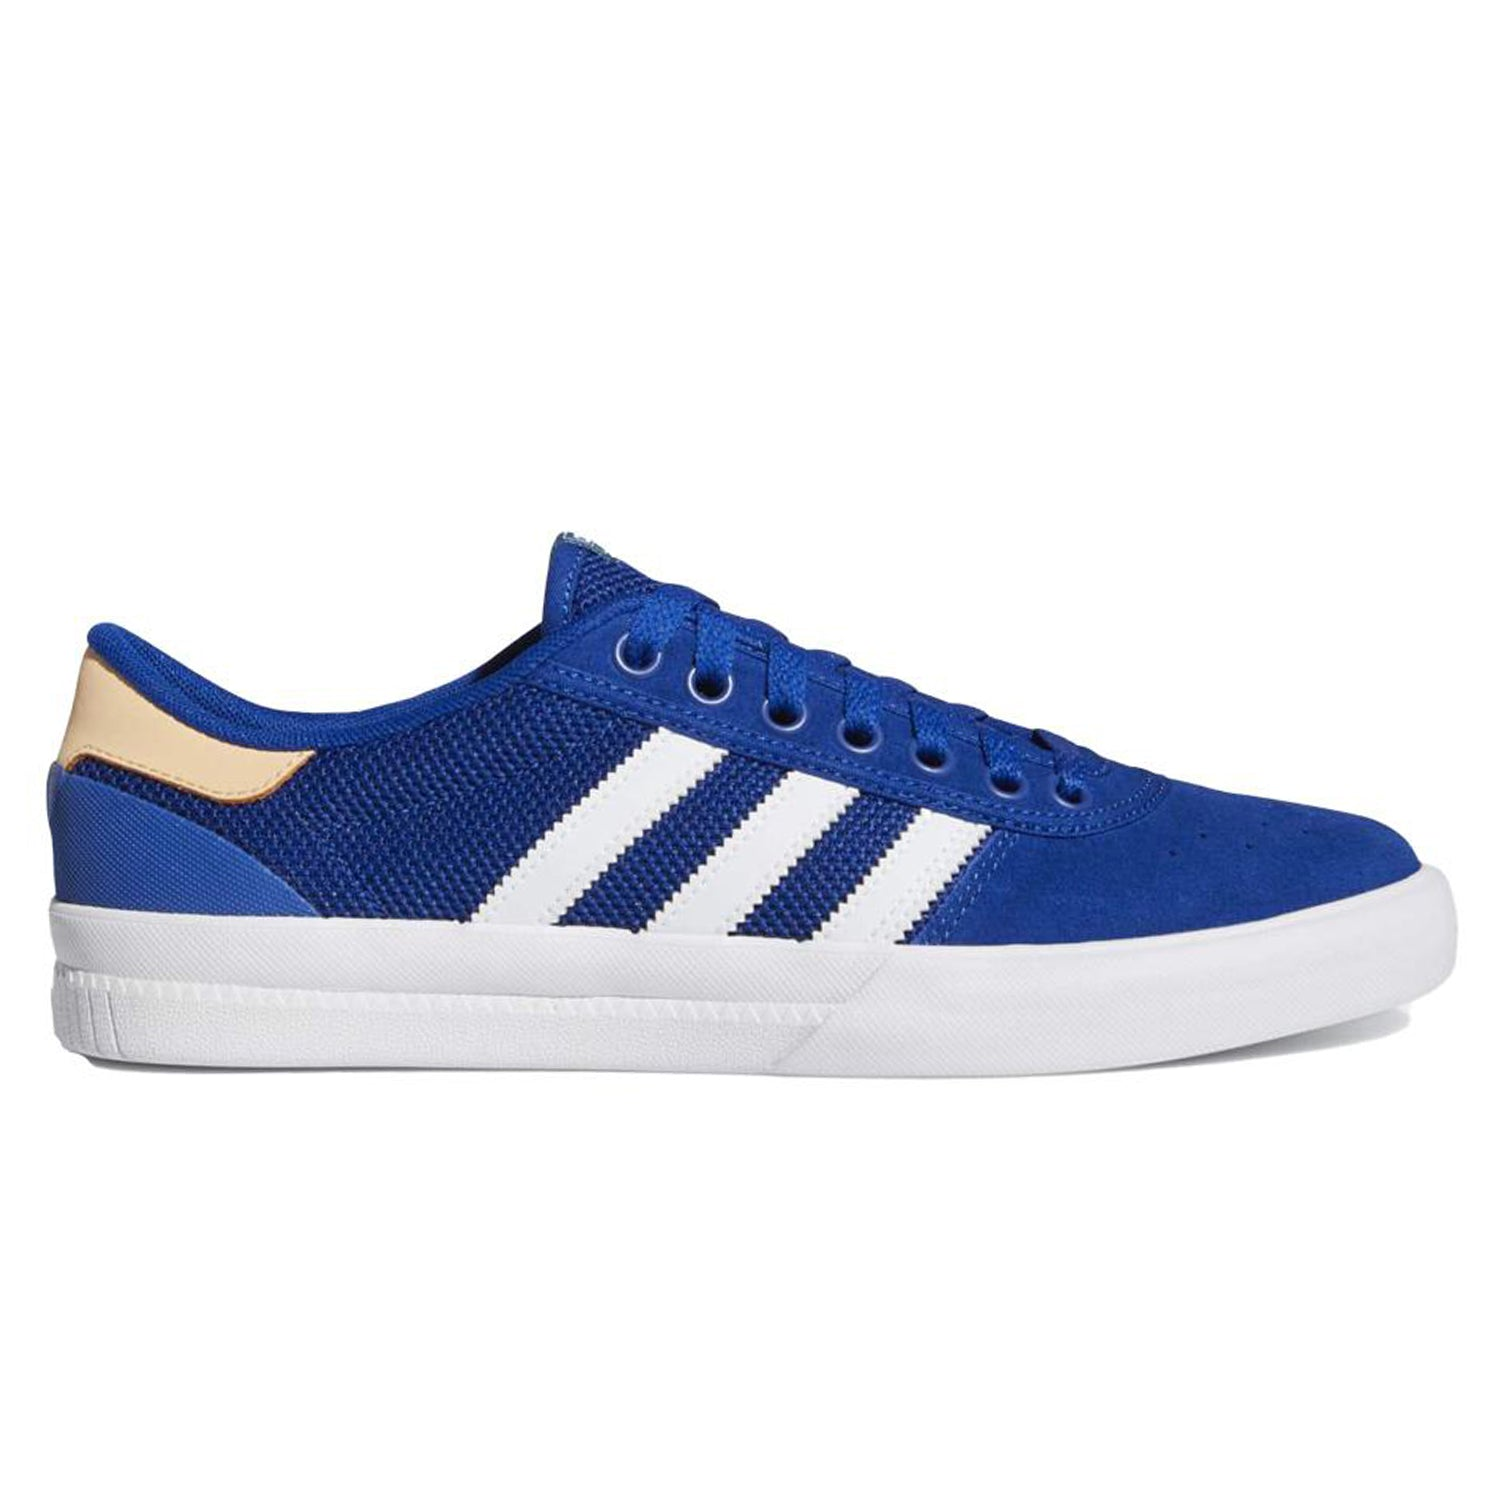 Adidas Lucas Premiere Collegiate Royal/Cloud White/Glow Orange